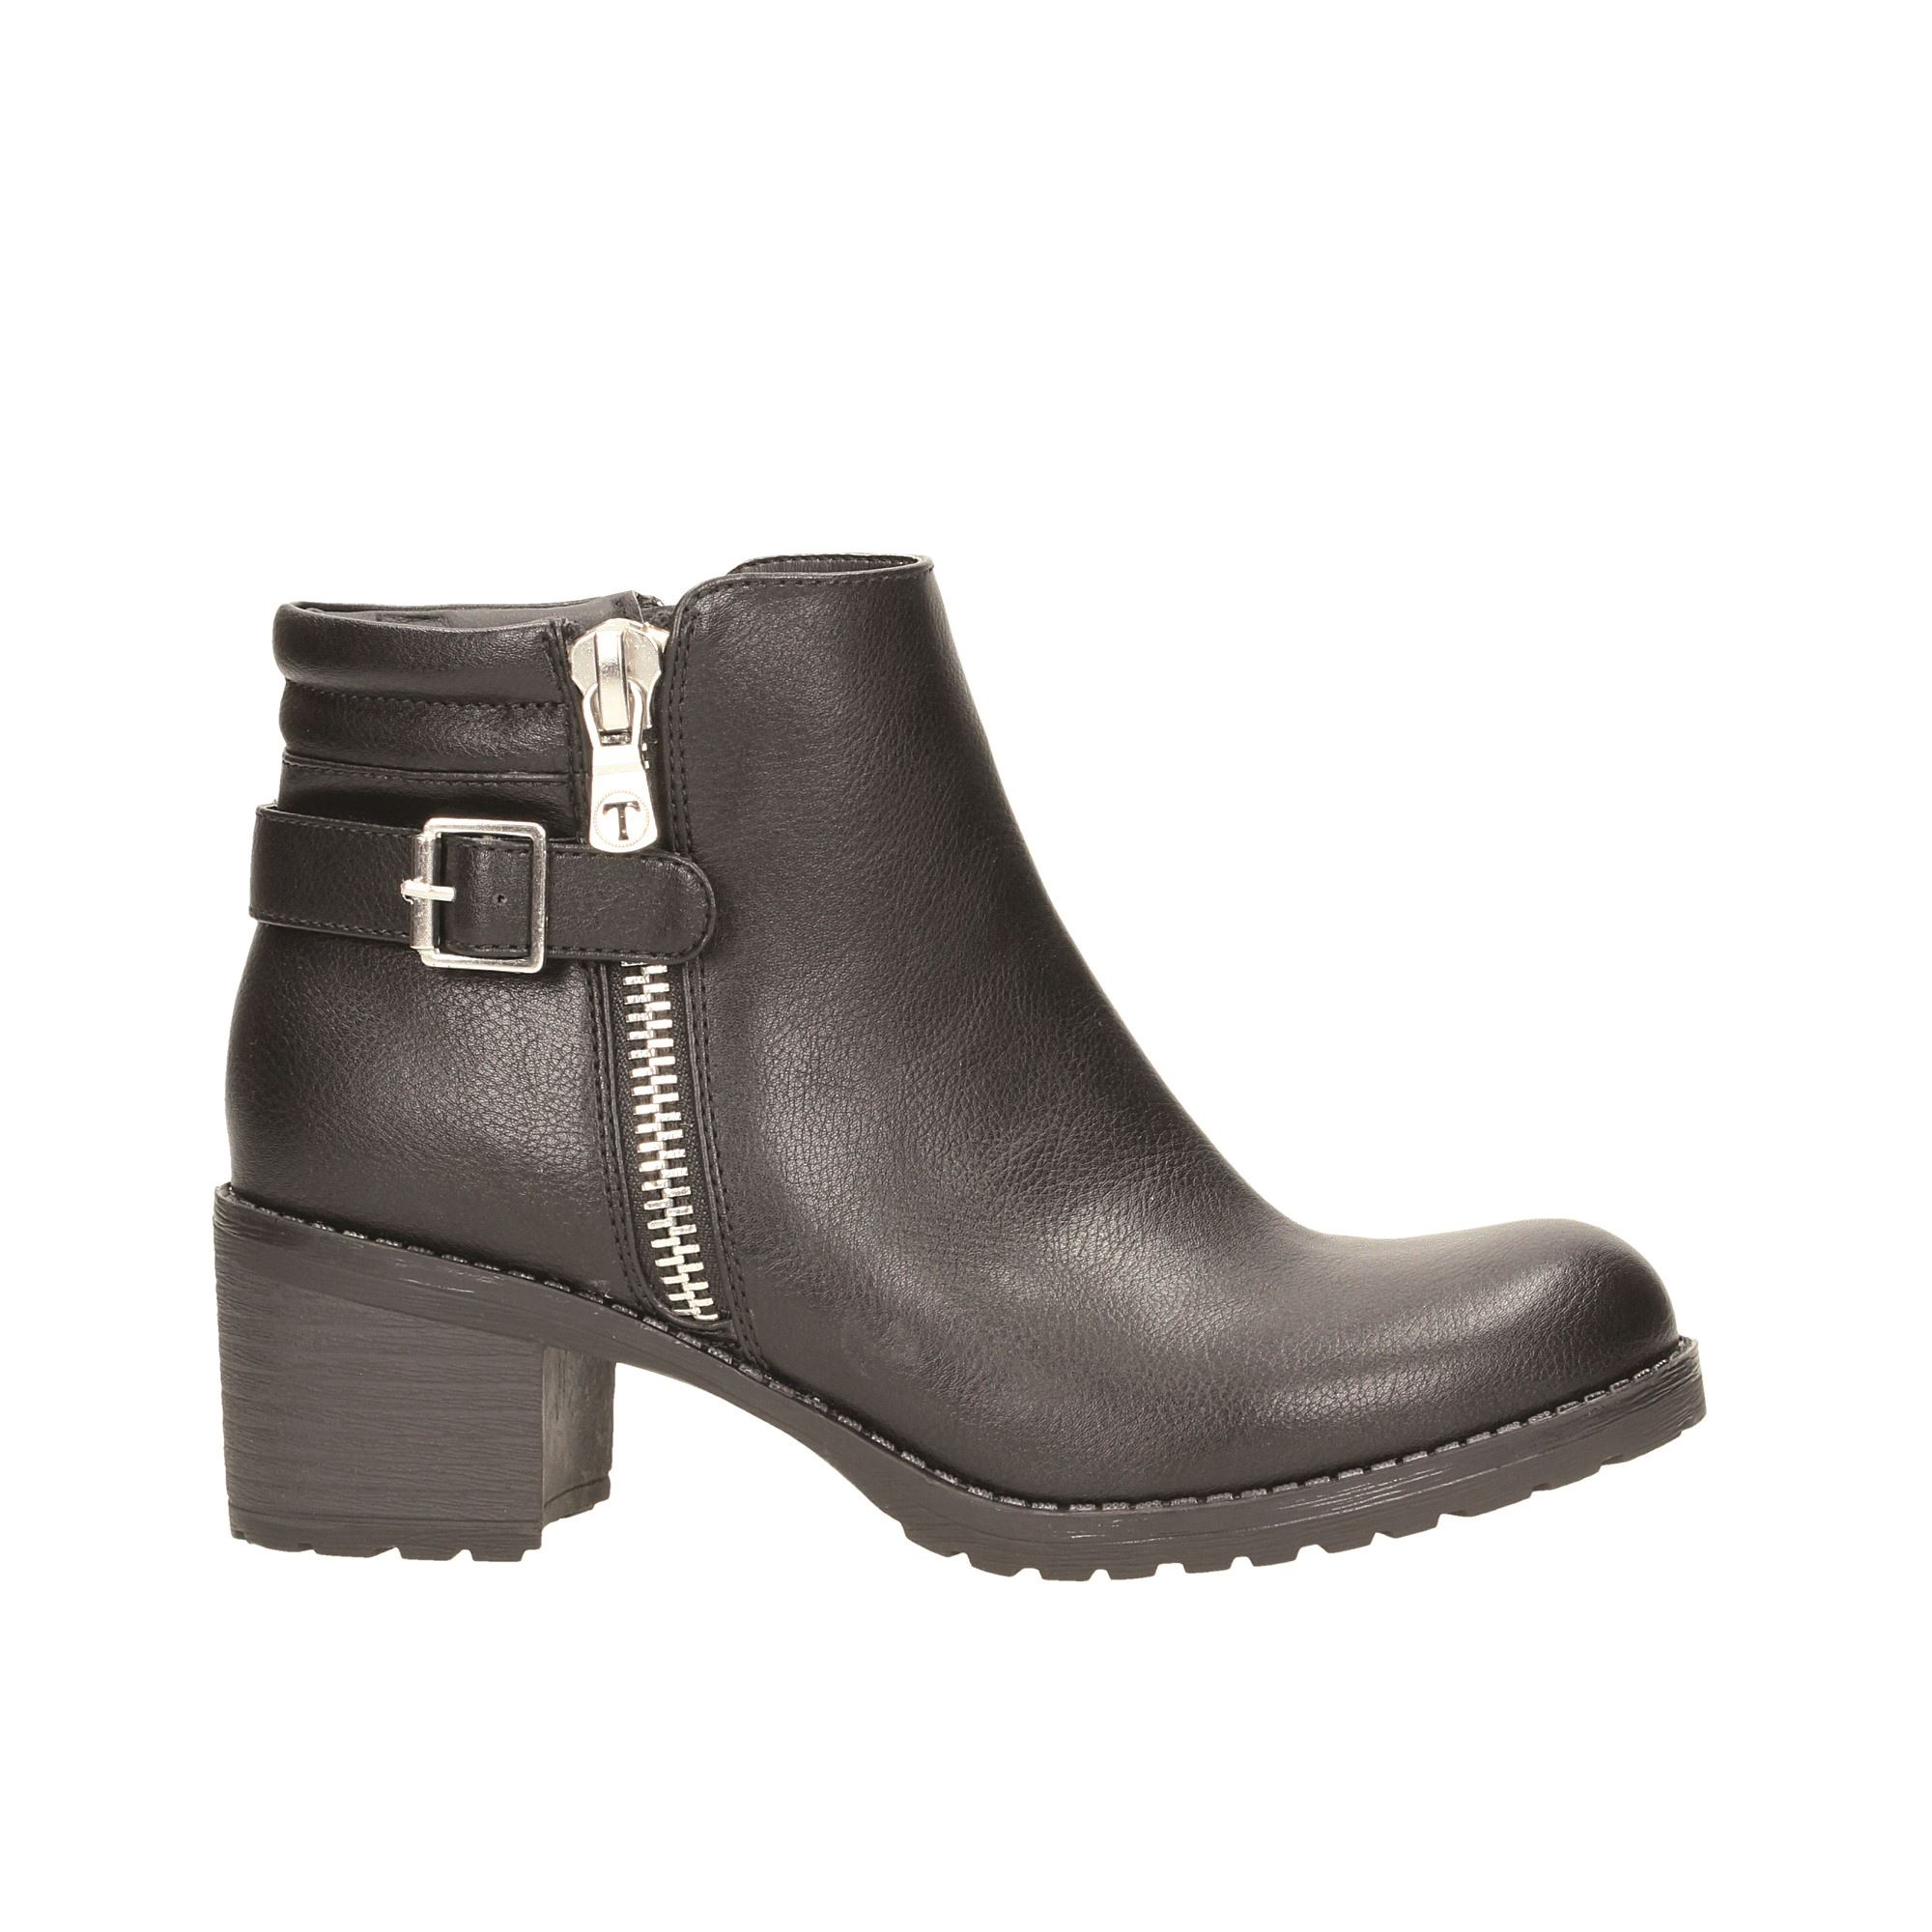 Tata Italia Shoes Woman Stivaletti Black 60HRT51/I17